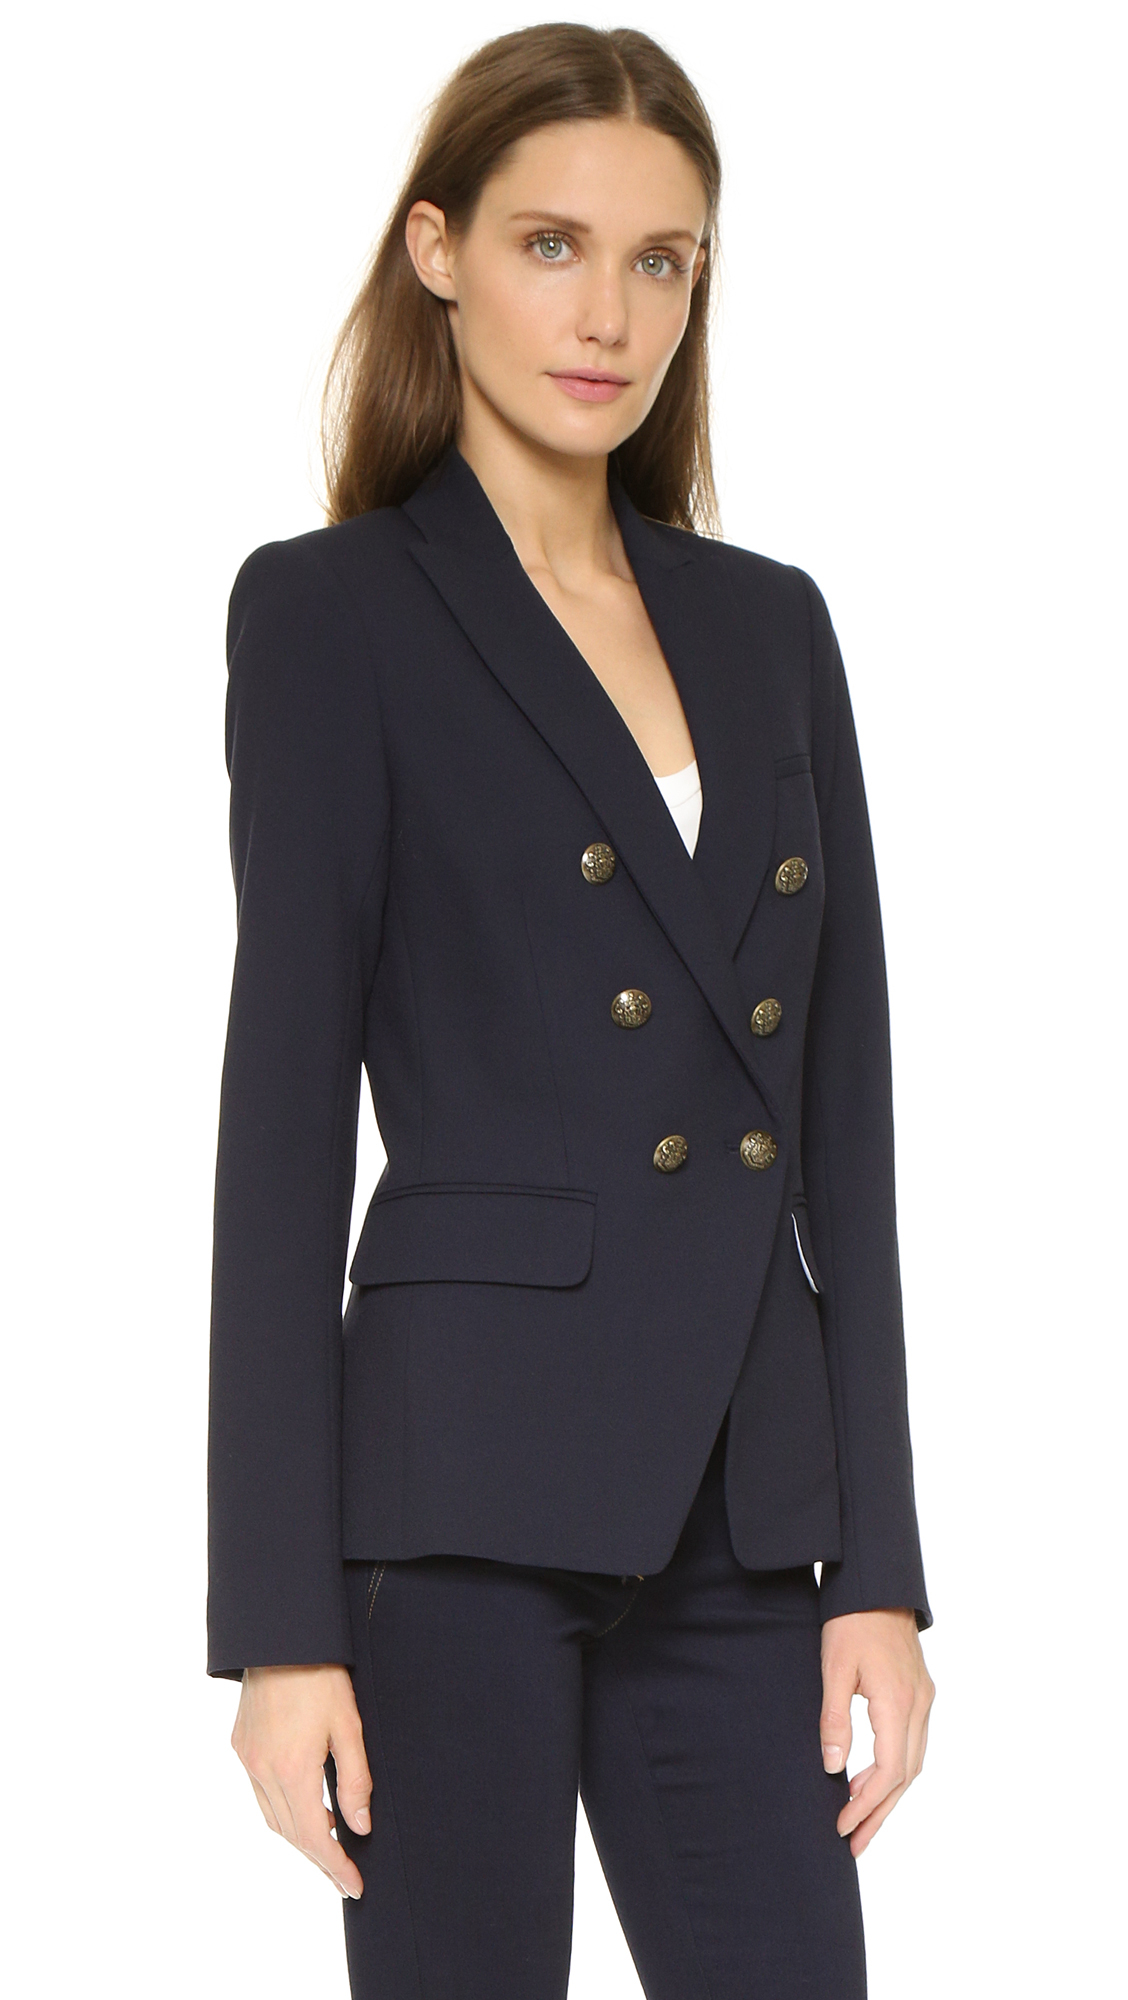 Veronica beard Captain Double Breasted Jacket - Navy in Blue | Lyst